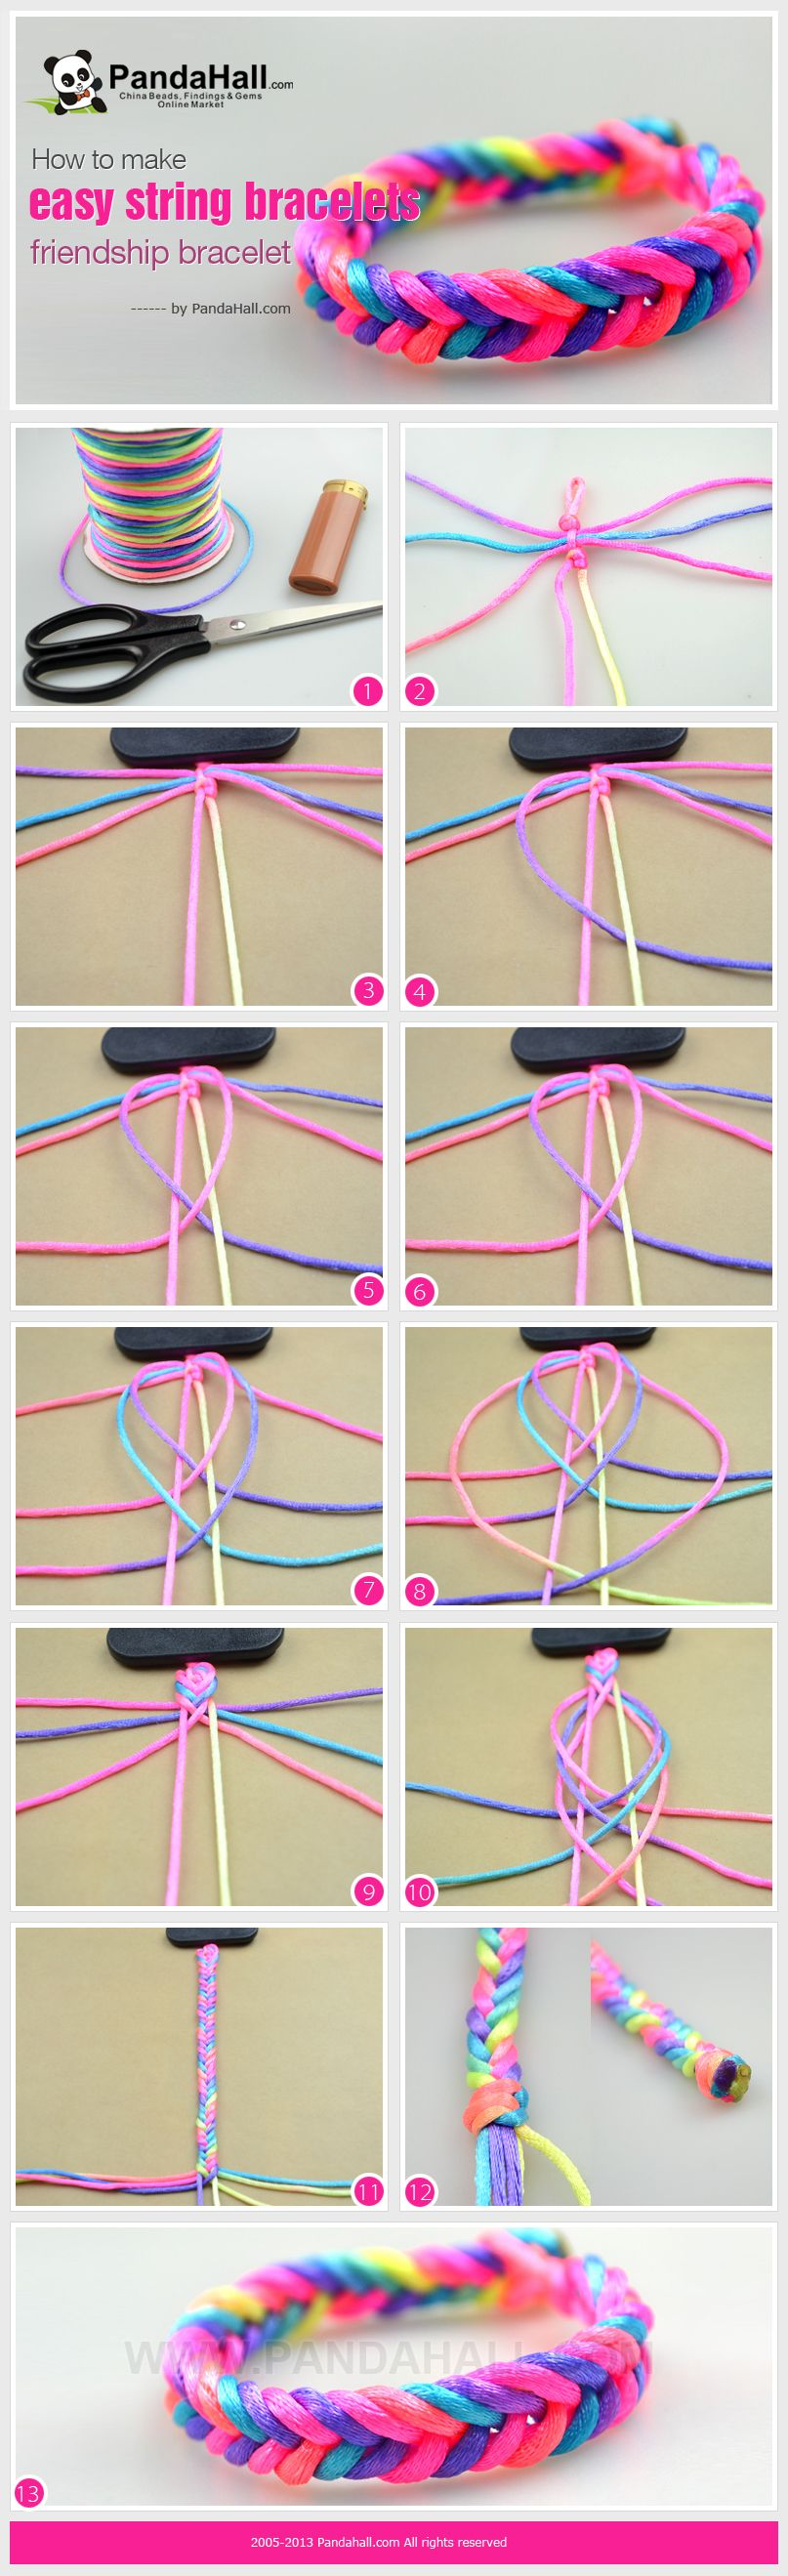 how to make a friendship bracelet with 4 strings